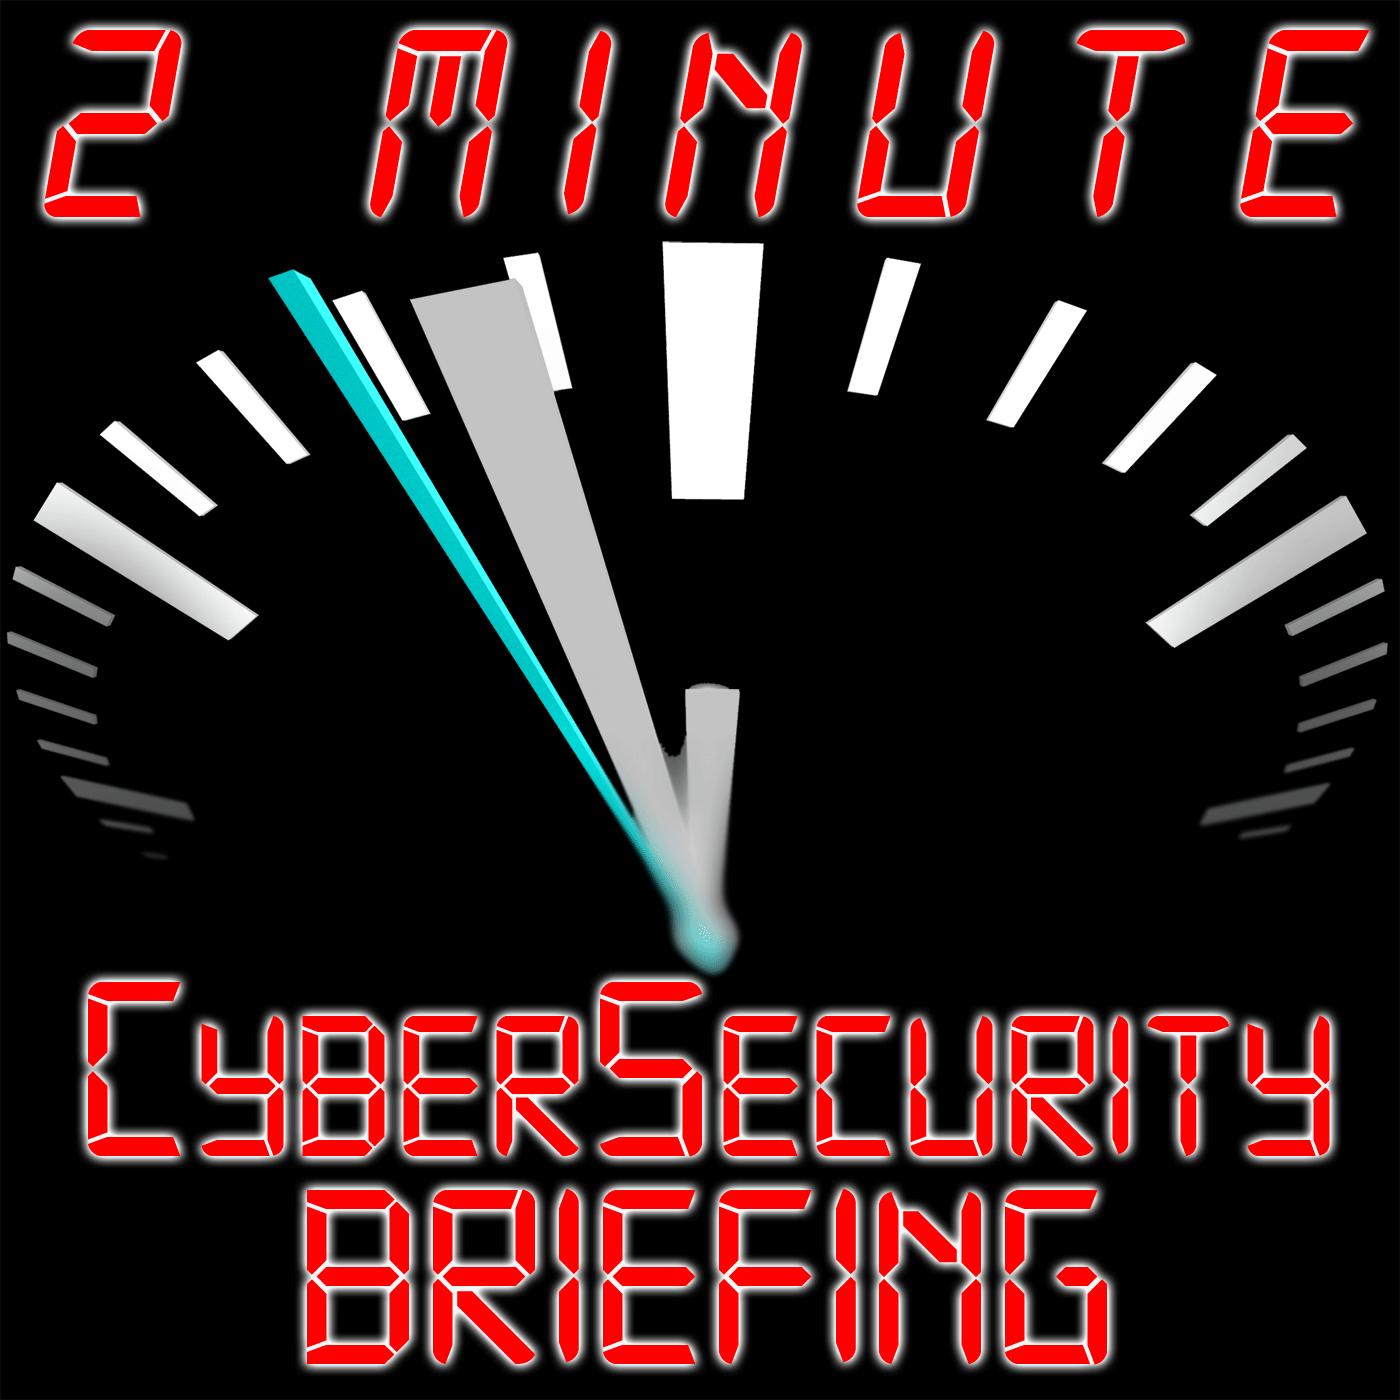 2 Minute CyberSecurity Briefing